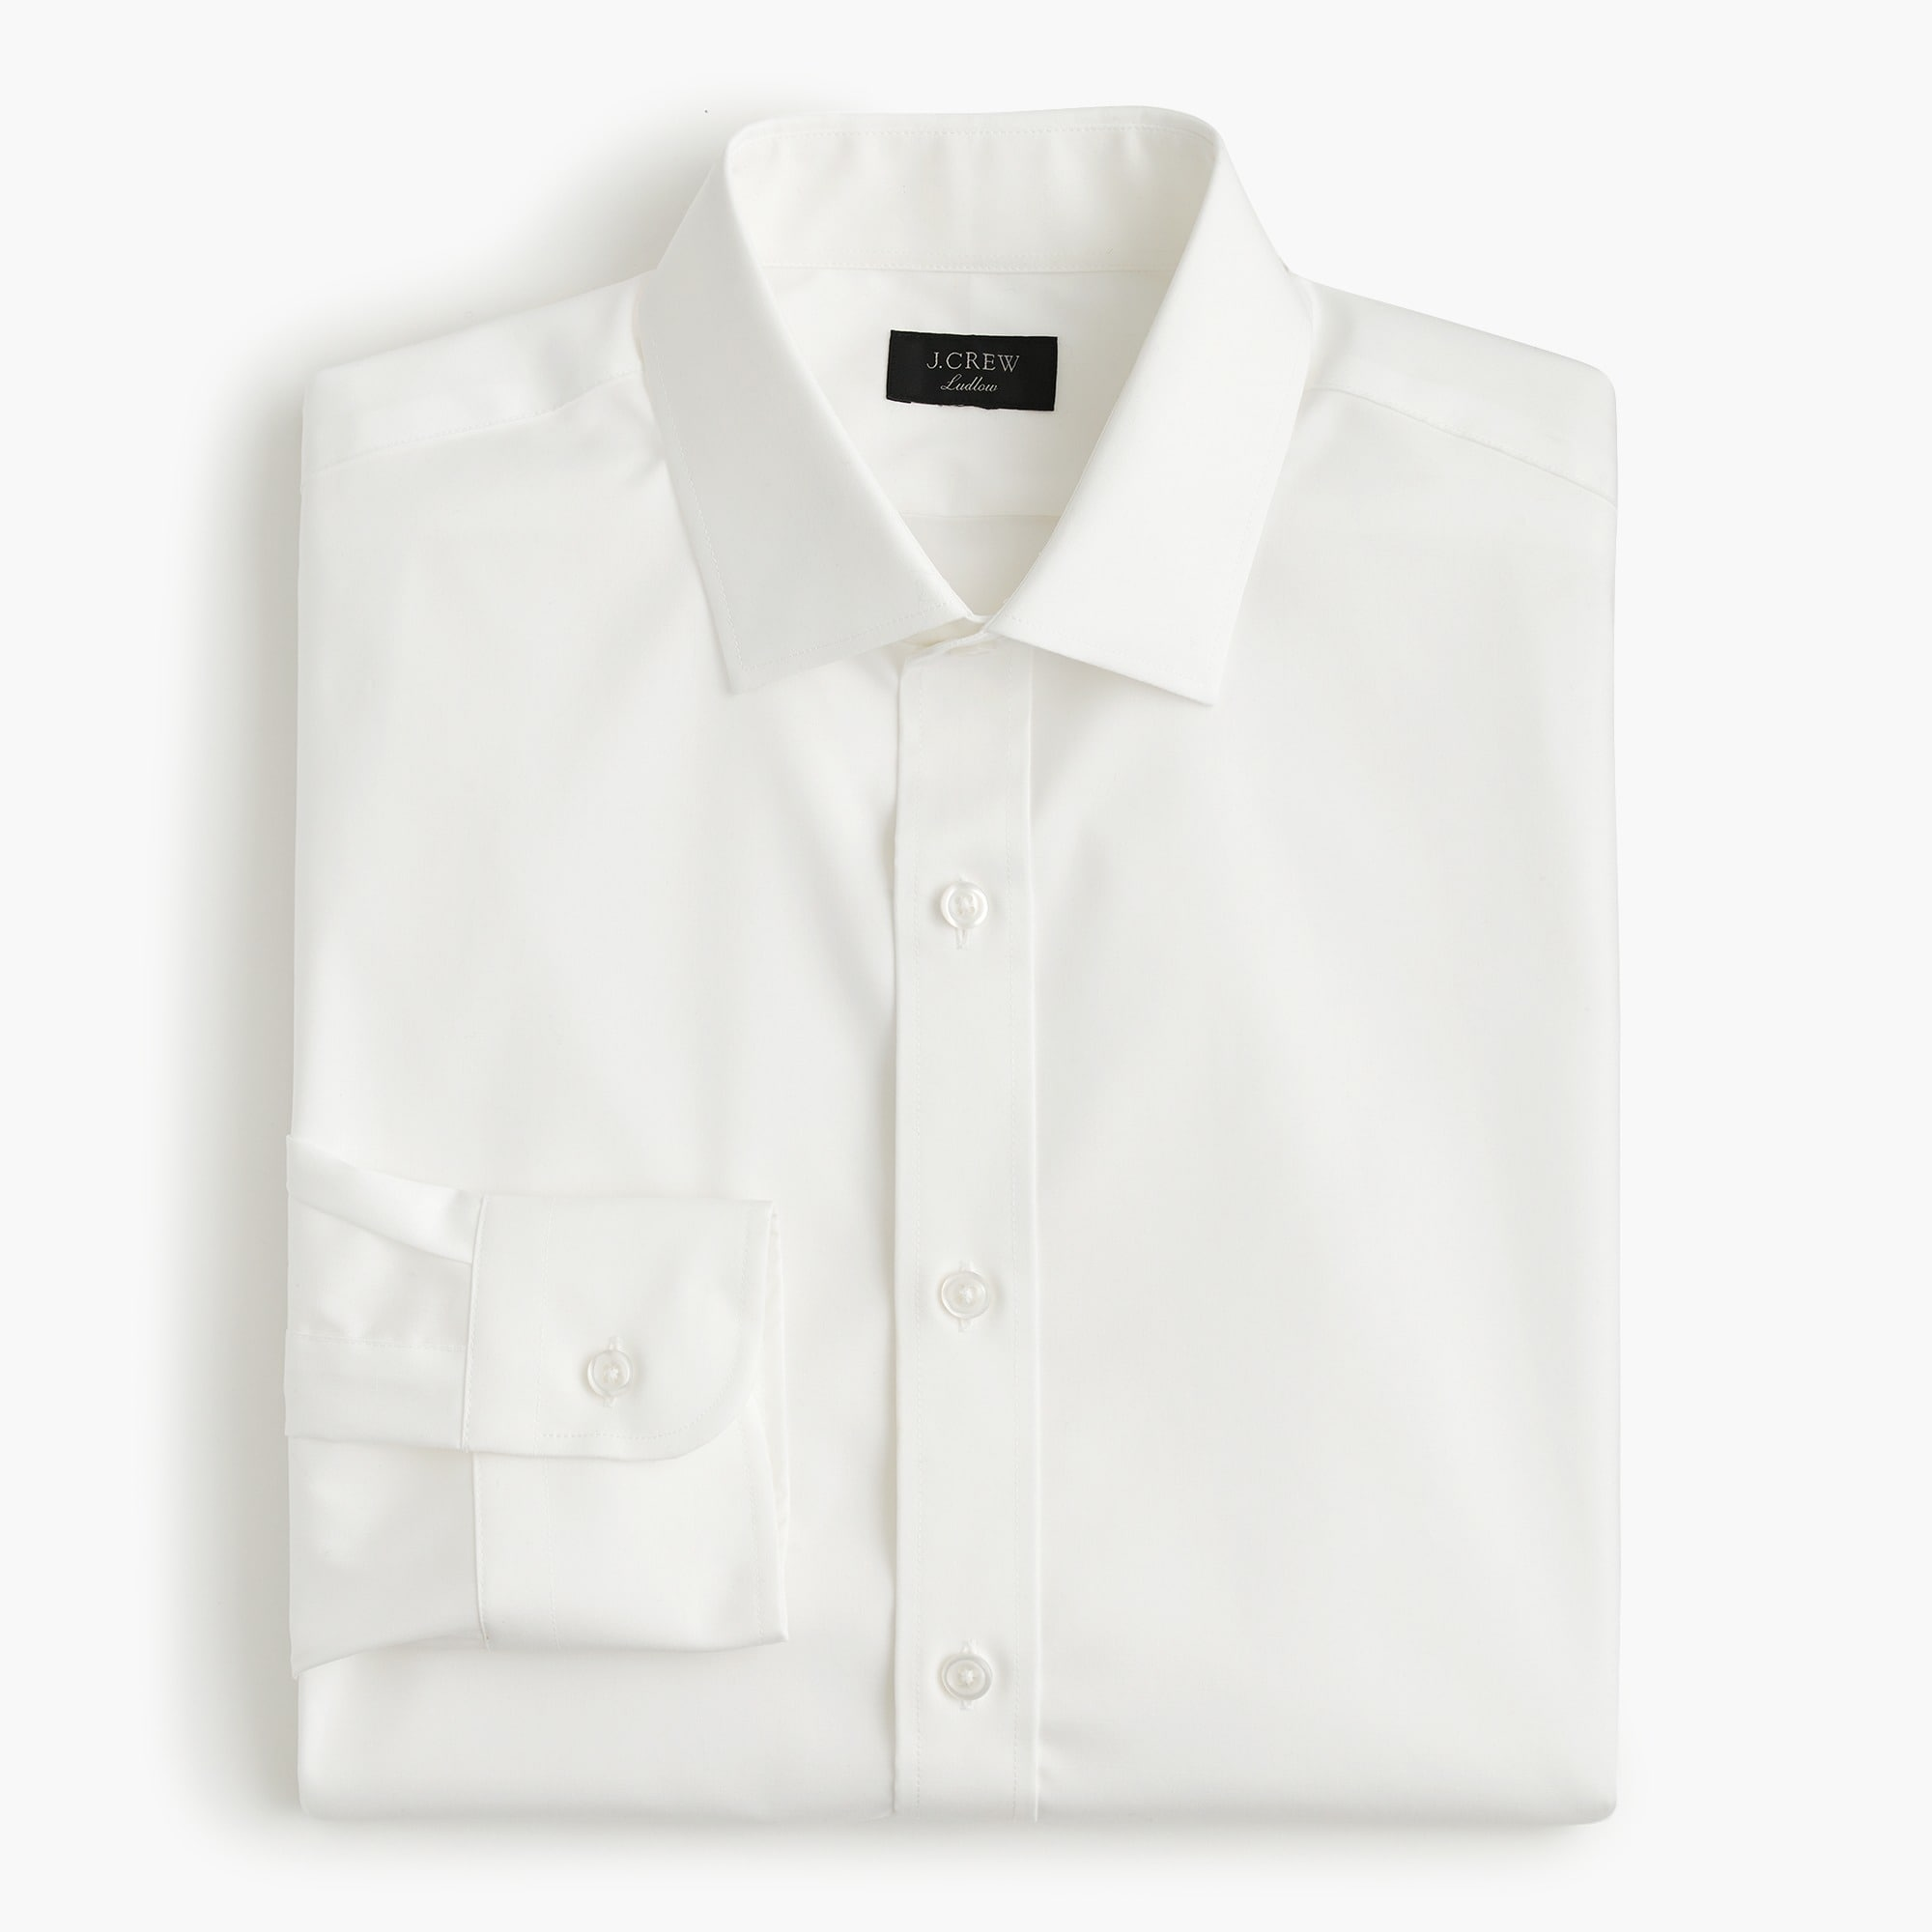 Classic Ludlow stretch two-ply easy-care cotton dress shirt in solid